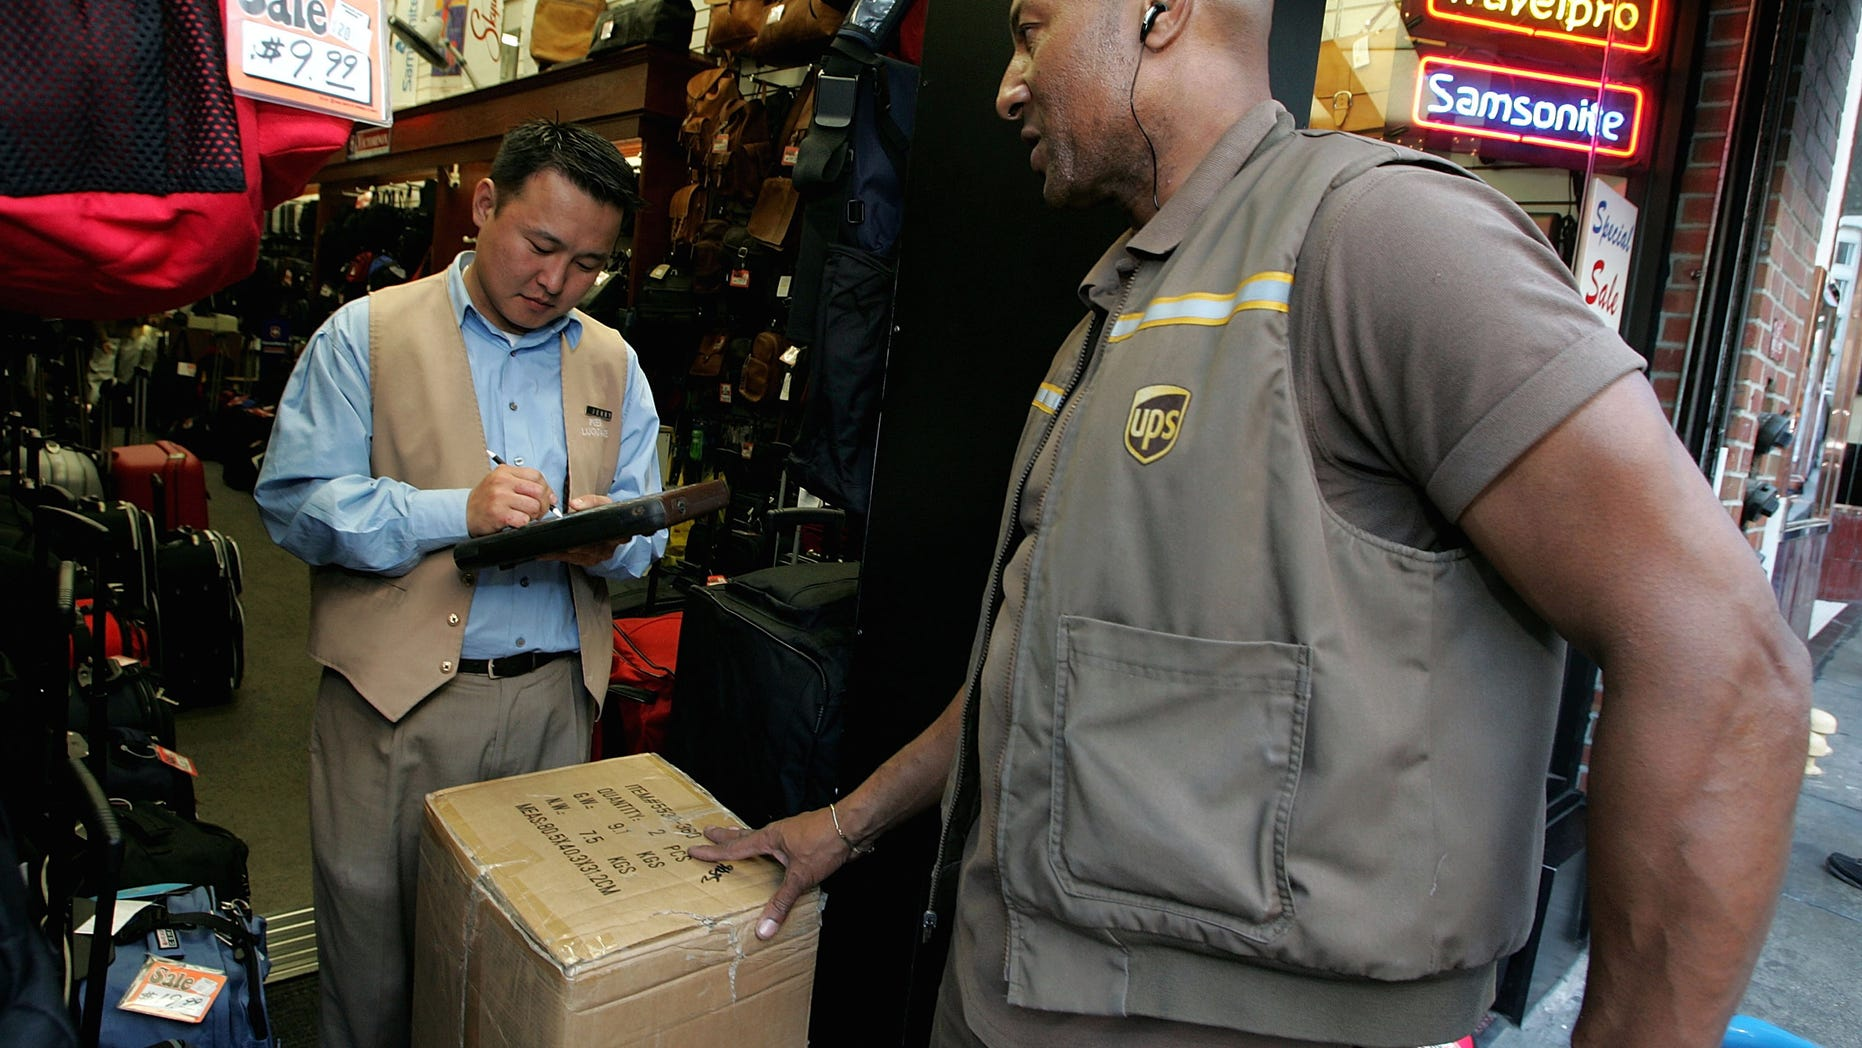 SAN FRANCISCO - DECEMBER 17: UPS driver Doug Lamb delivers a package to a store December 17, 2004 in San Francisco, California. UPS expects to deliver more than 20 million packages on Dec. 21, its busiest shipping day of the year. (Photo by Justin Sullivan/Getty Images)